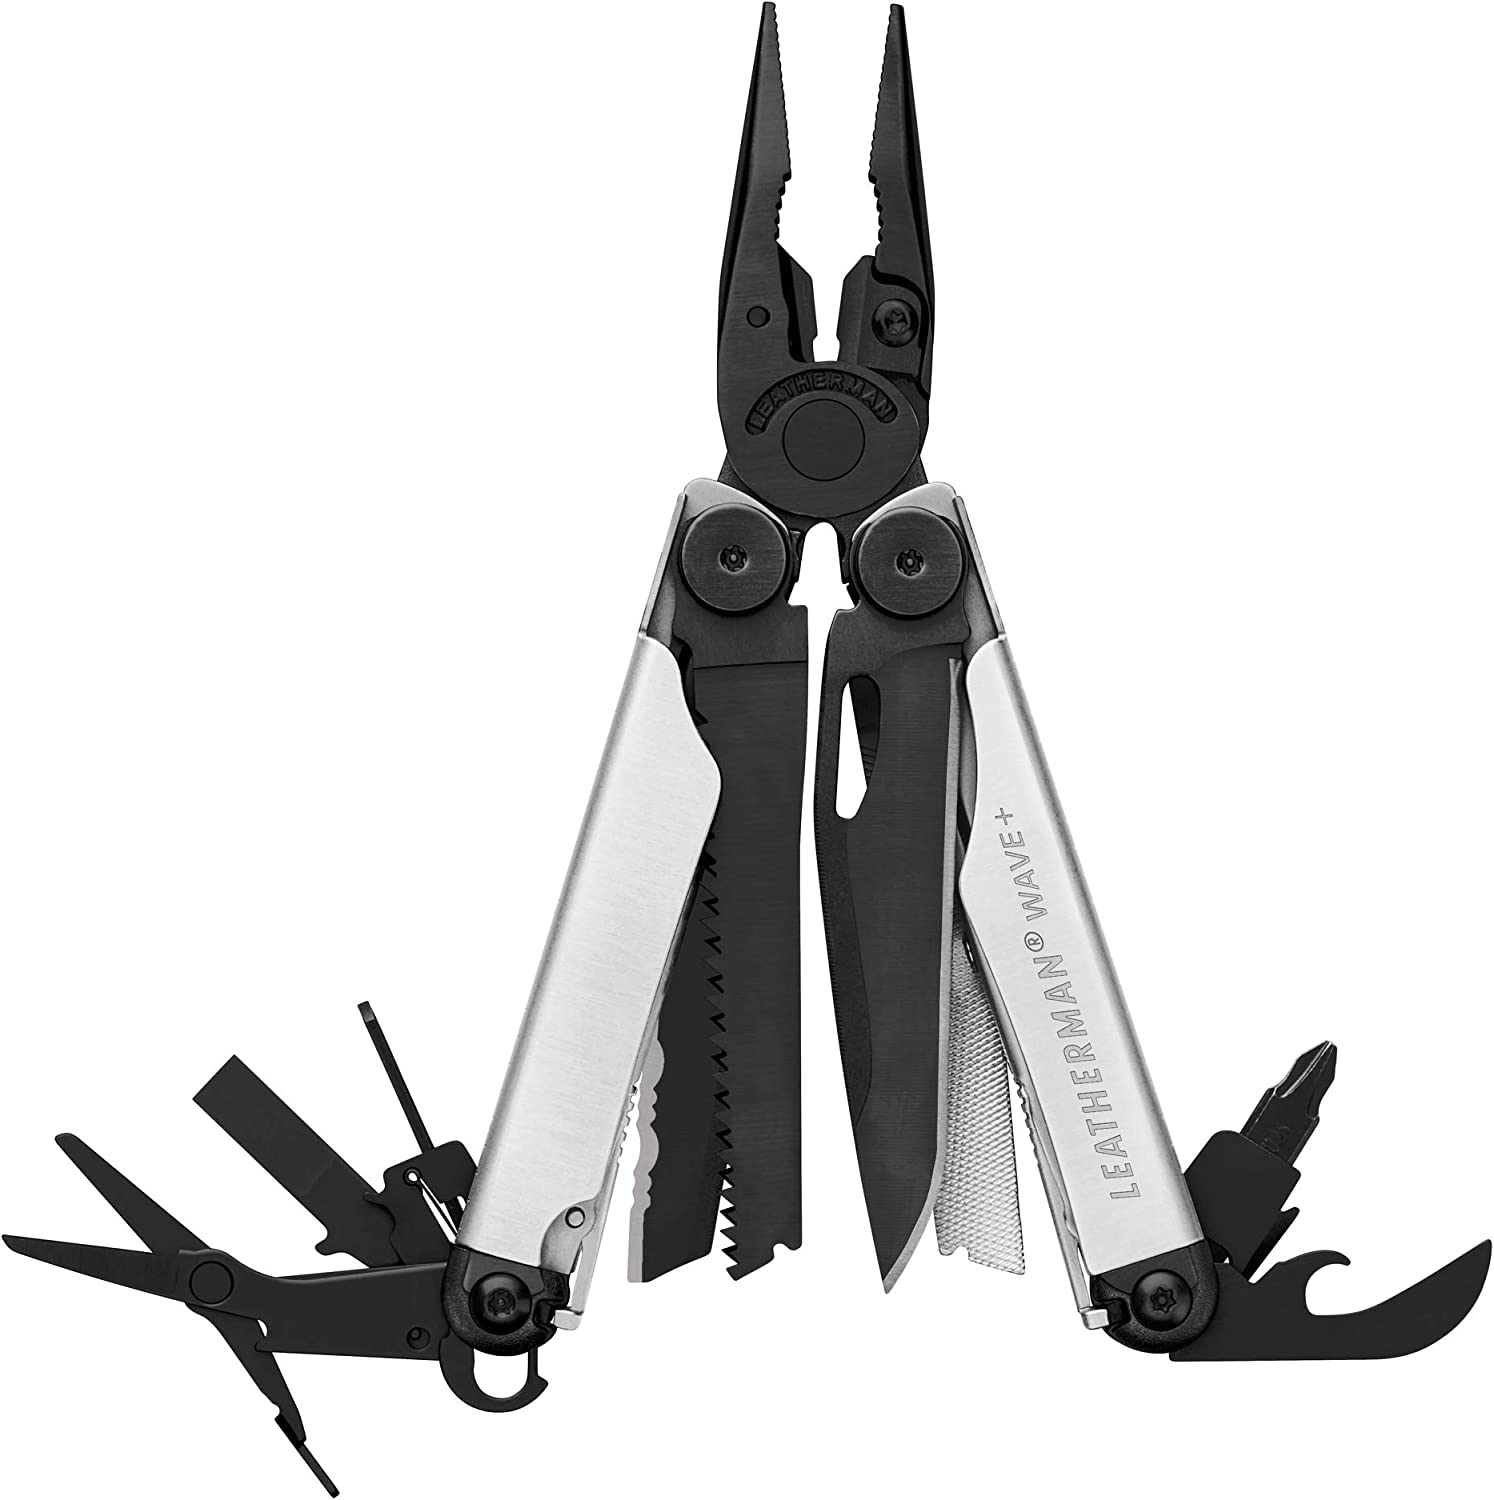 LEATHERMAN, Wave Plus Multitool with Premium Replaceable Wire Cutters and Spring-Action Scissors, Built in the USA, Limited Edition Black/Silver with Nylon Sheath